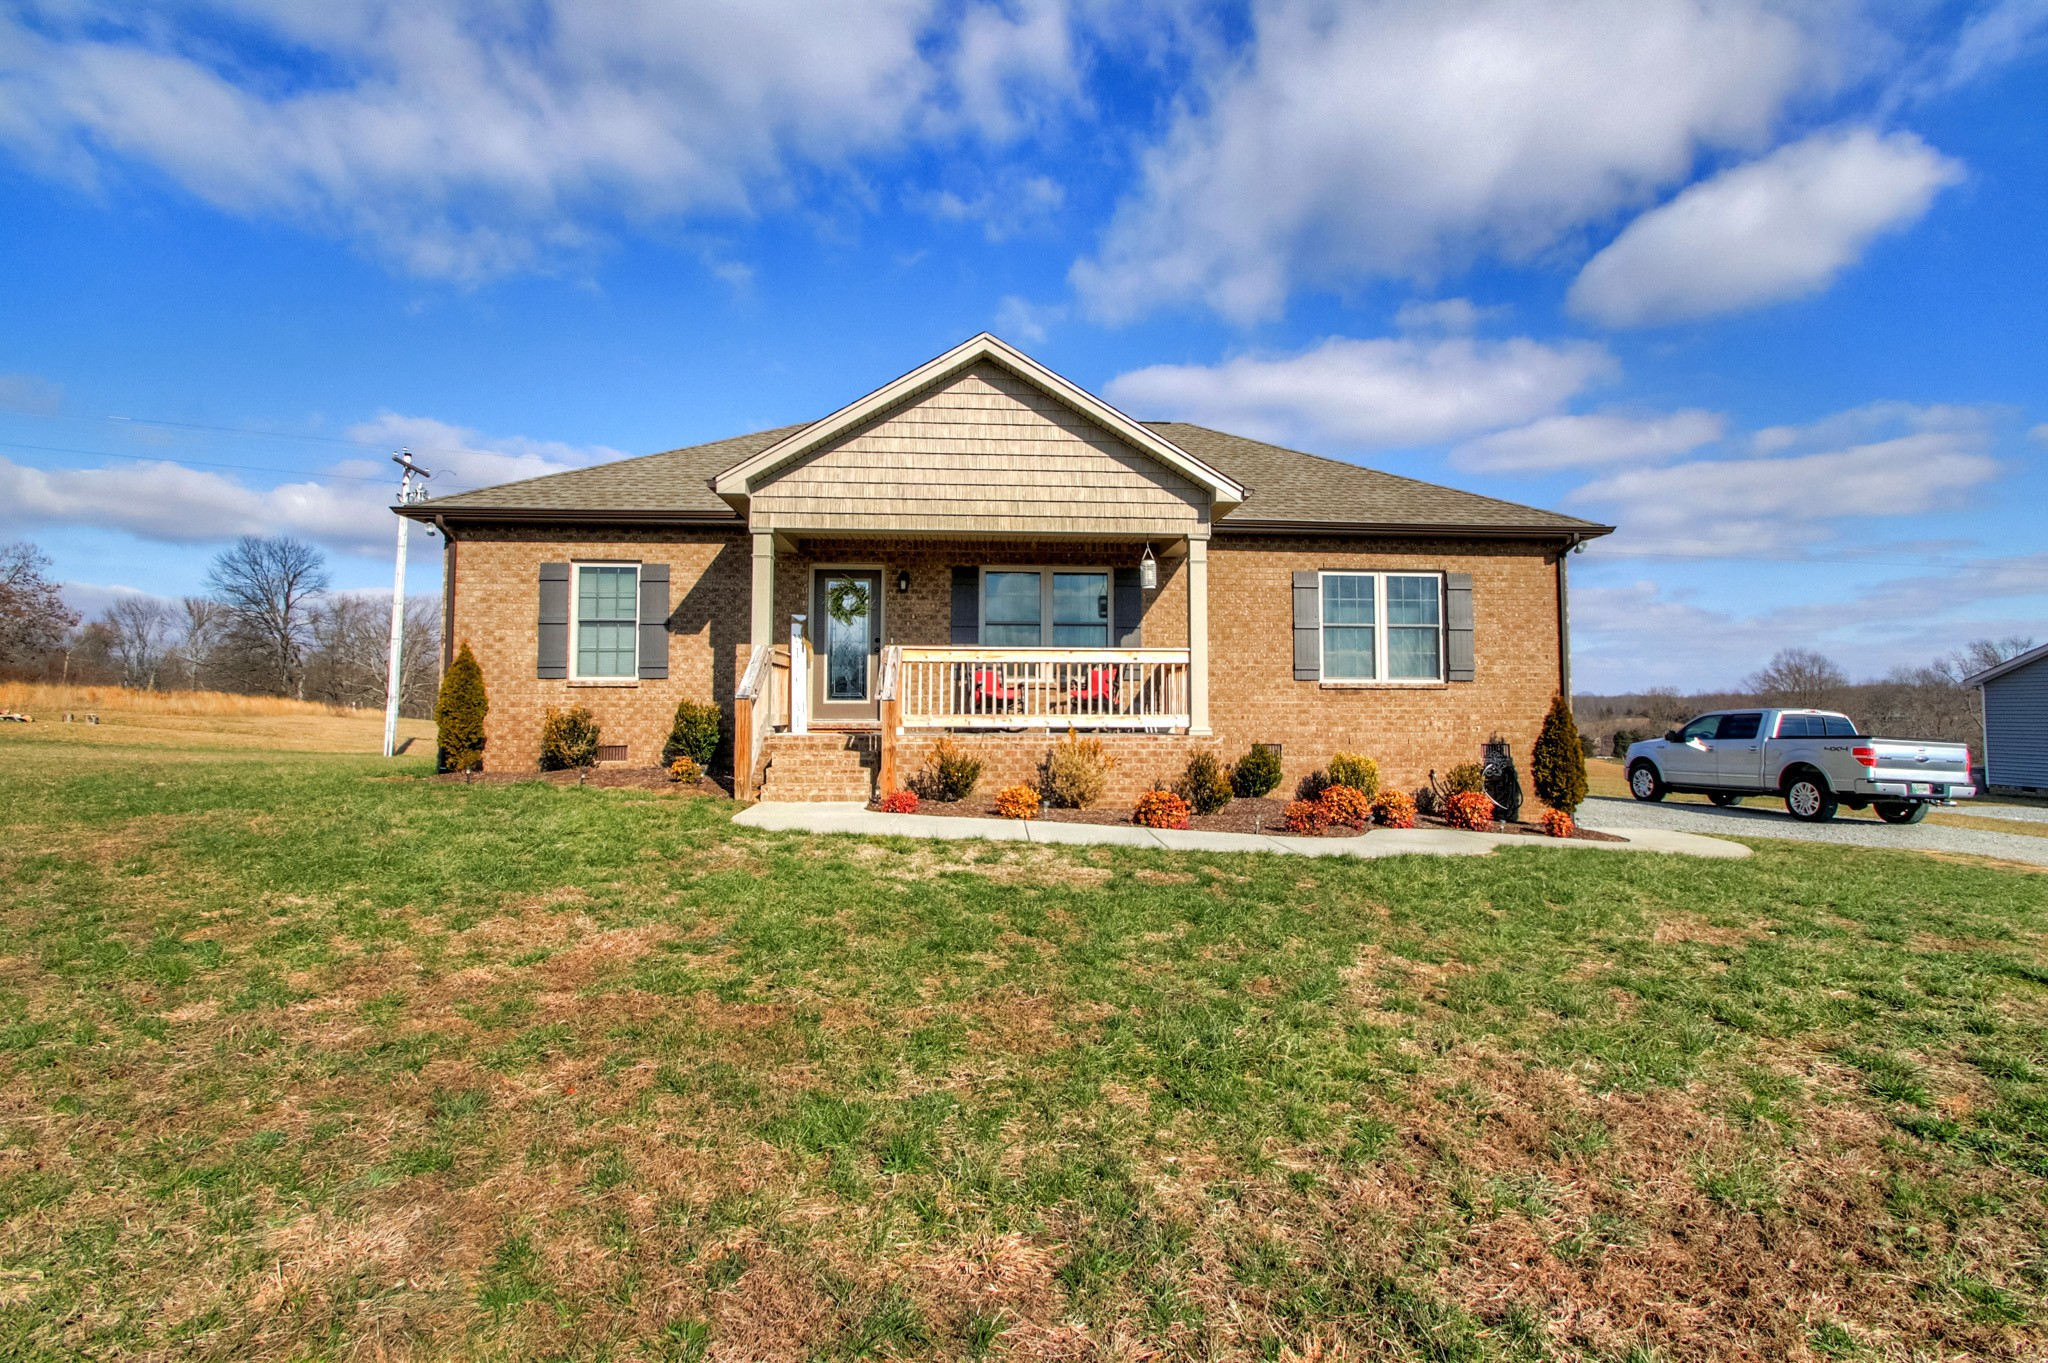 597 Womack Rd, Bethpage, TN 37022 - Bethpage, TN real estate listing